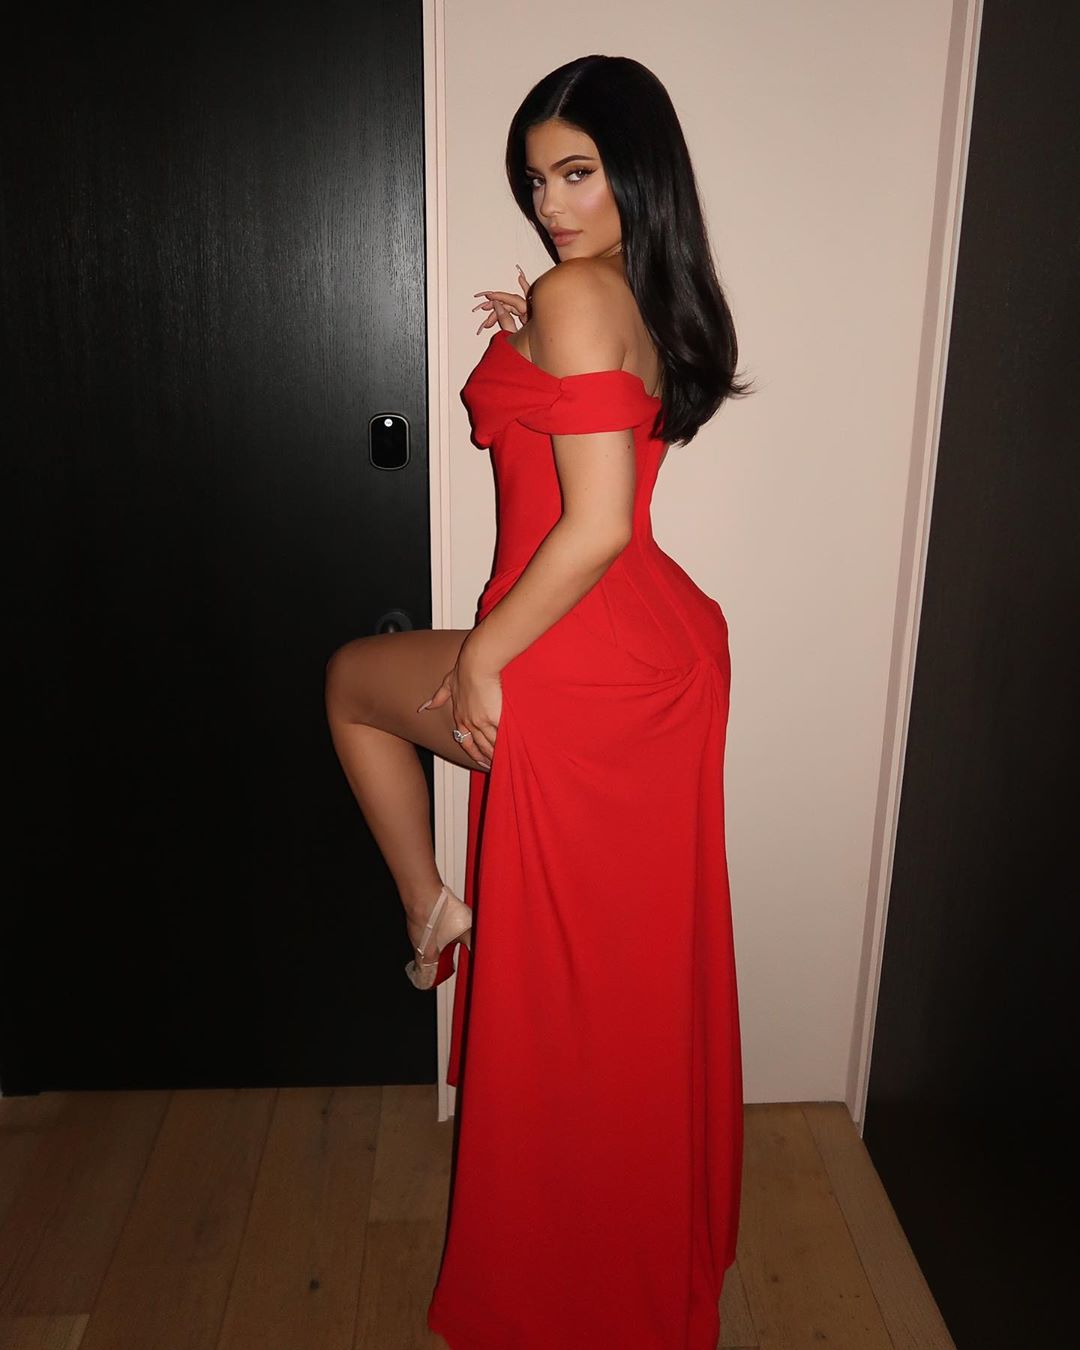 Kylie Jenner donning a Sexy red dress with a satin material, cap sleeves and gathered waist